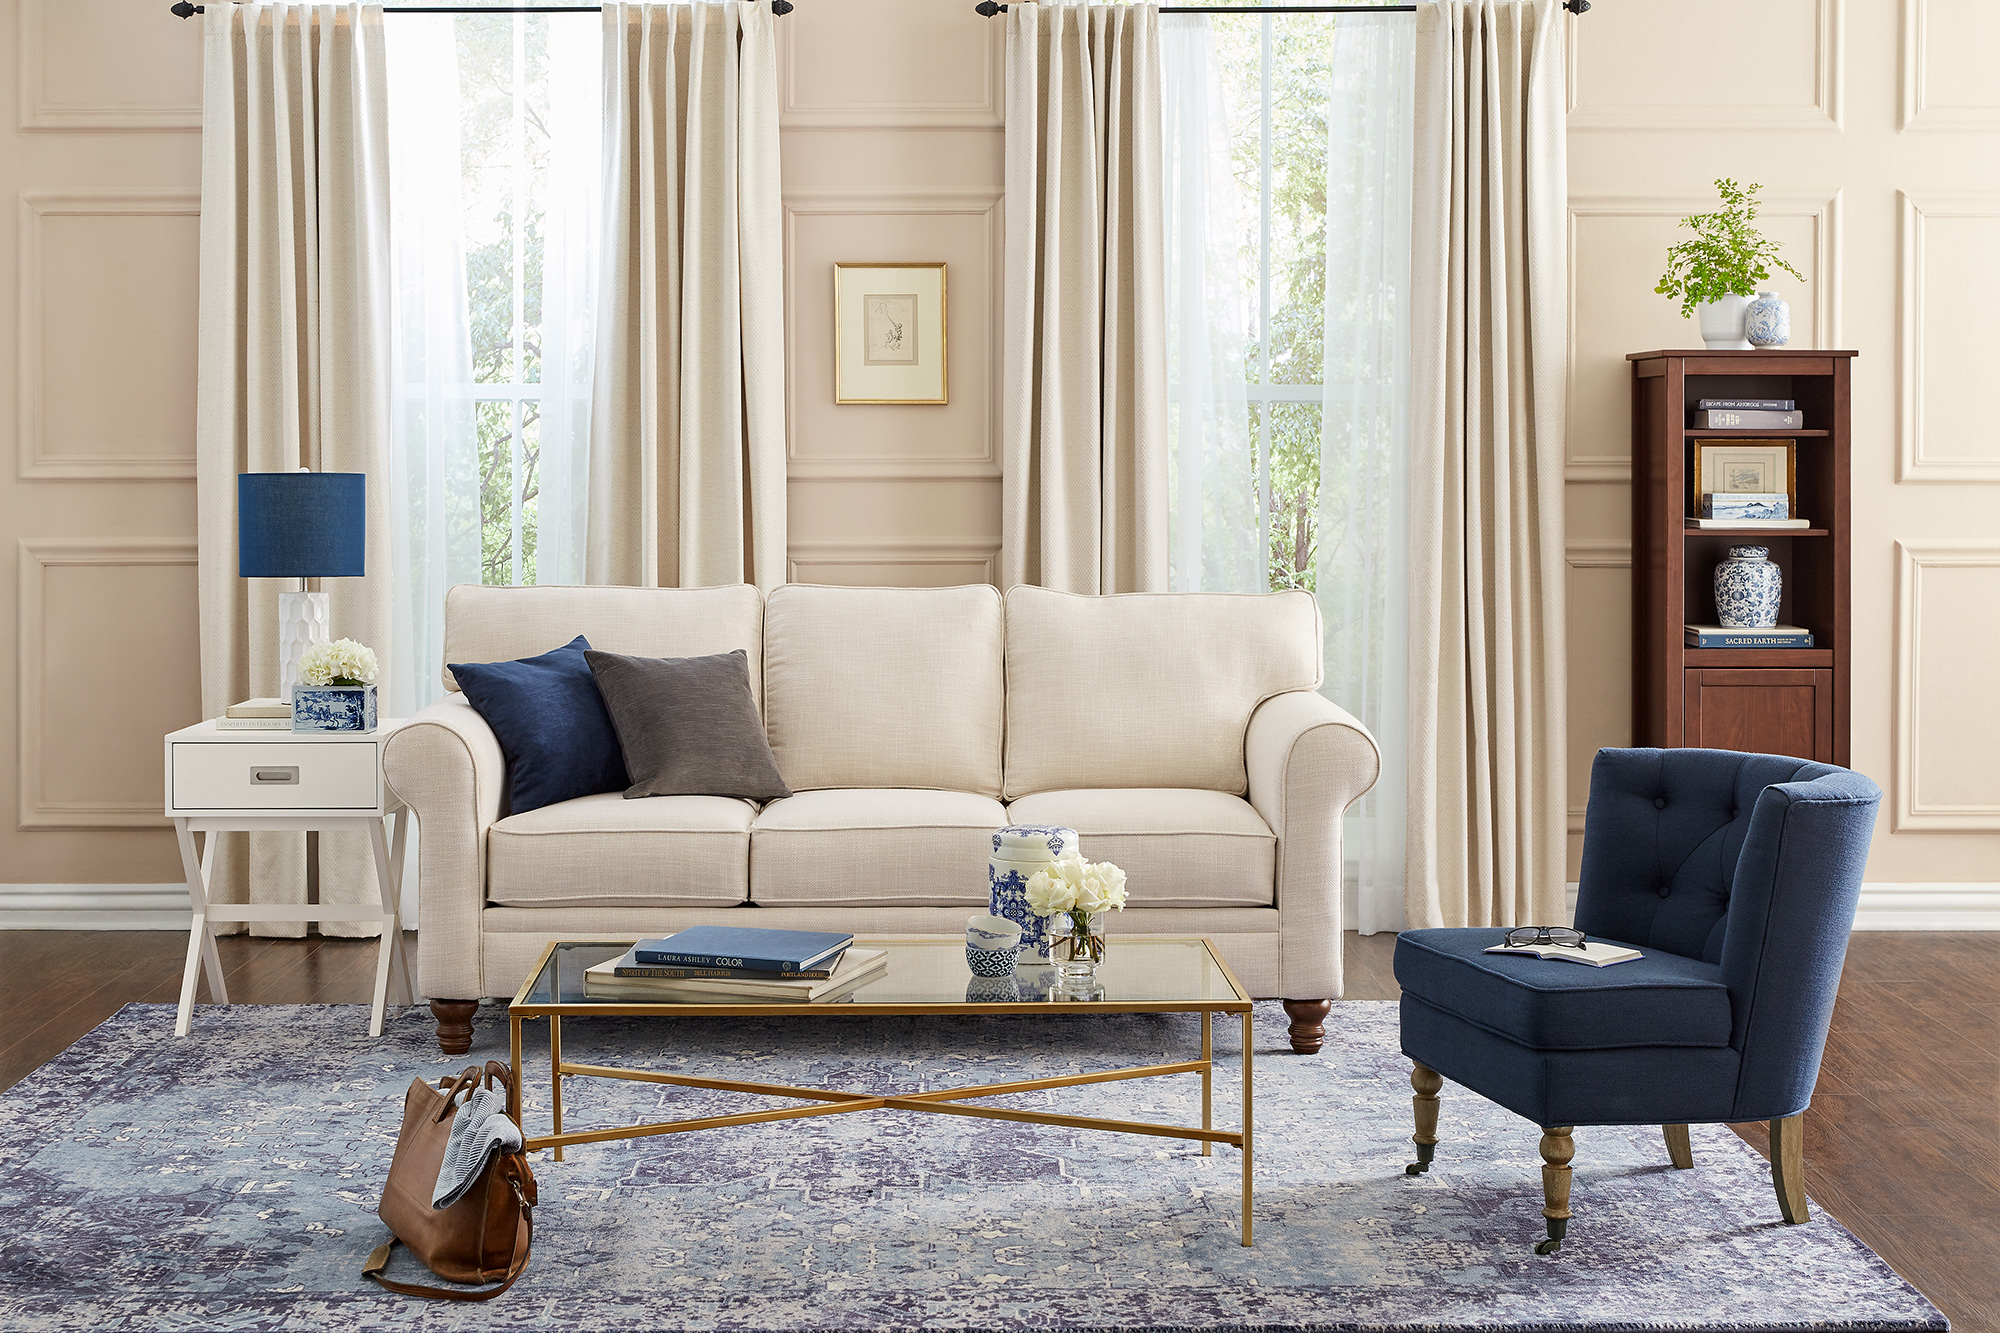 amazing uttermost rubati accent table ravenna home living launches its own furnishings collection take peek the affordable items black farmhouse homemade coffee plans market